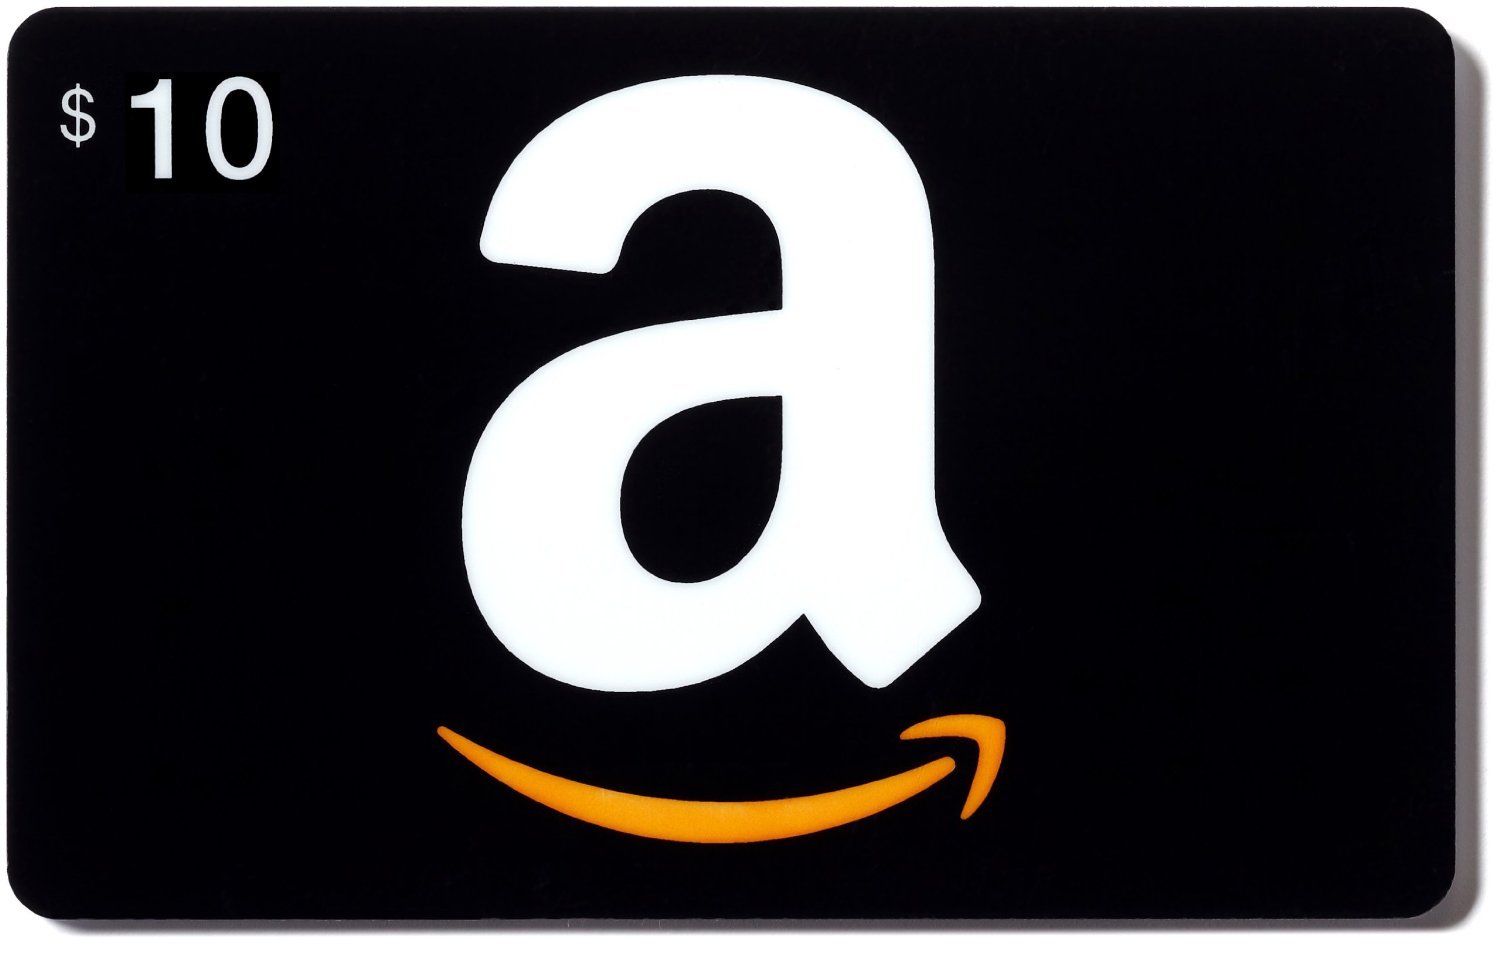 Exclusive Walmart Community - Free Amazon Gift Cards for Participation